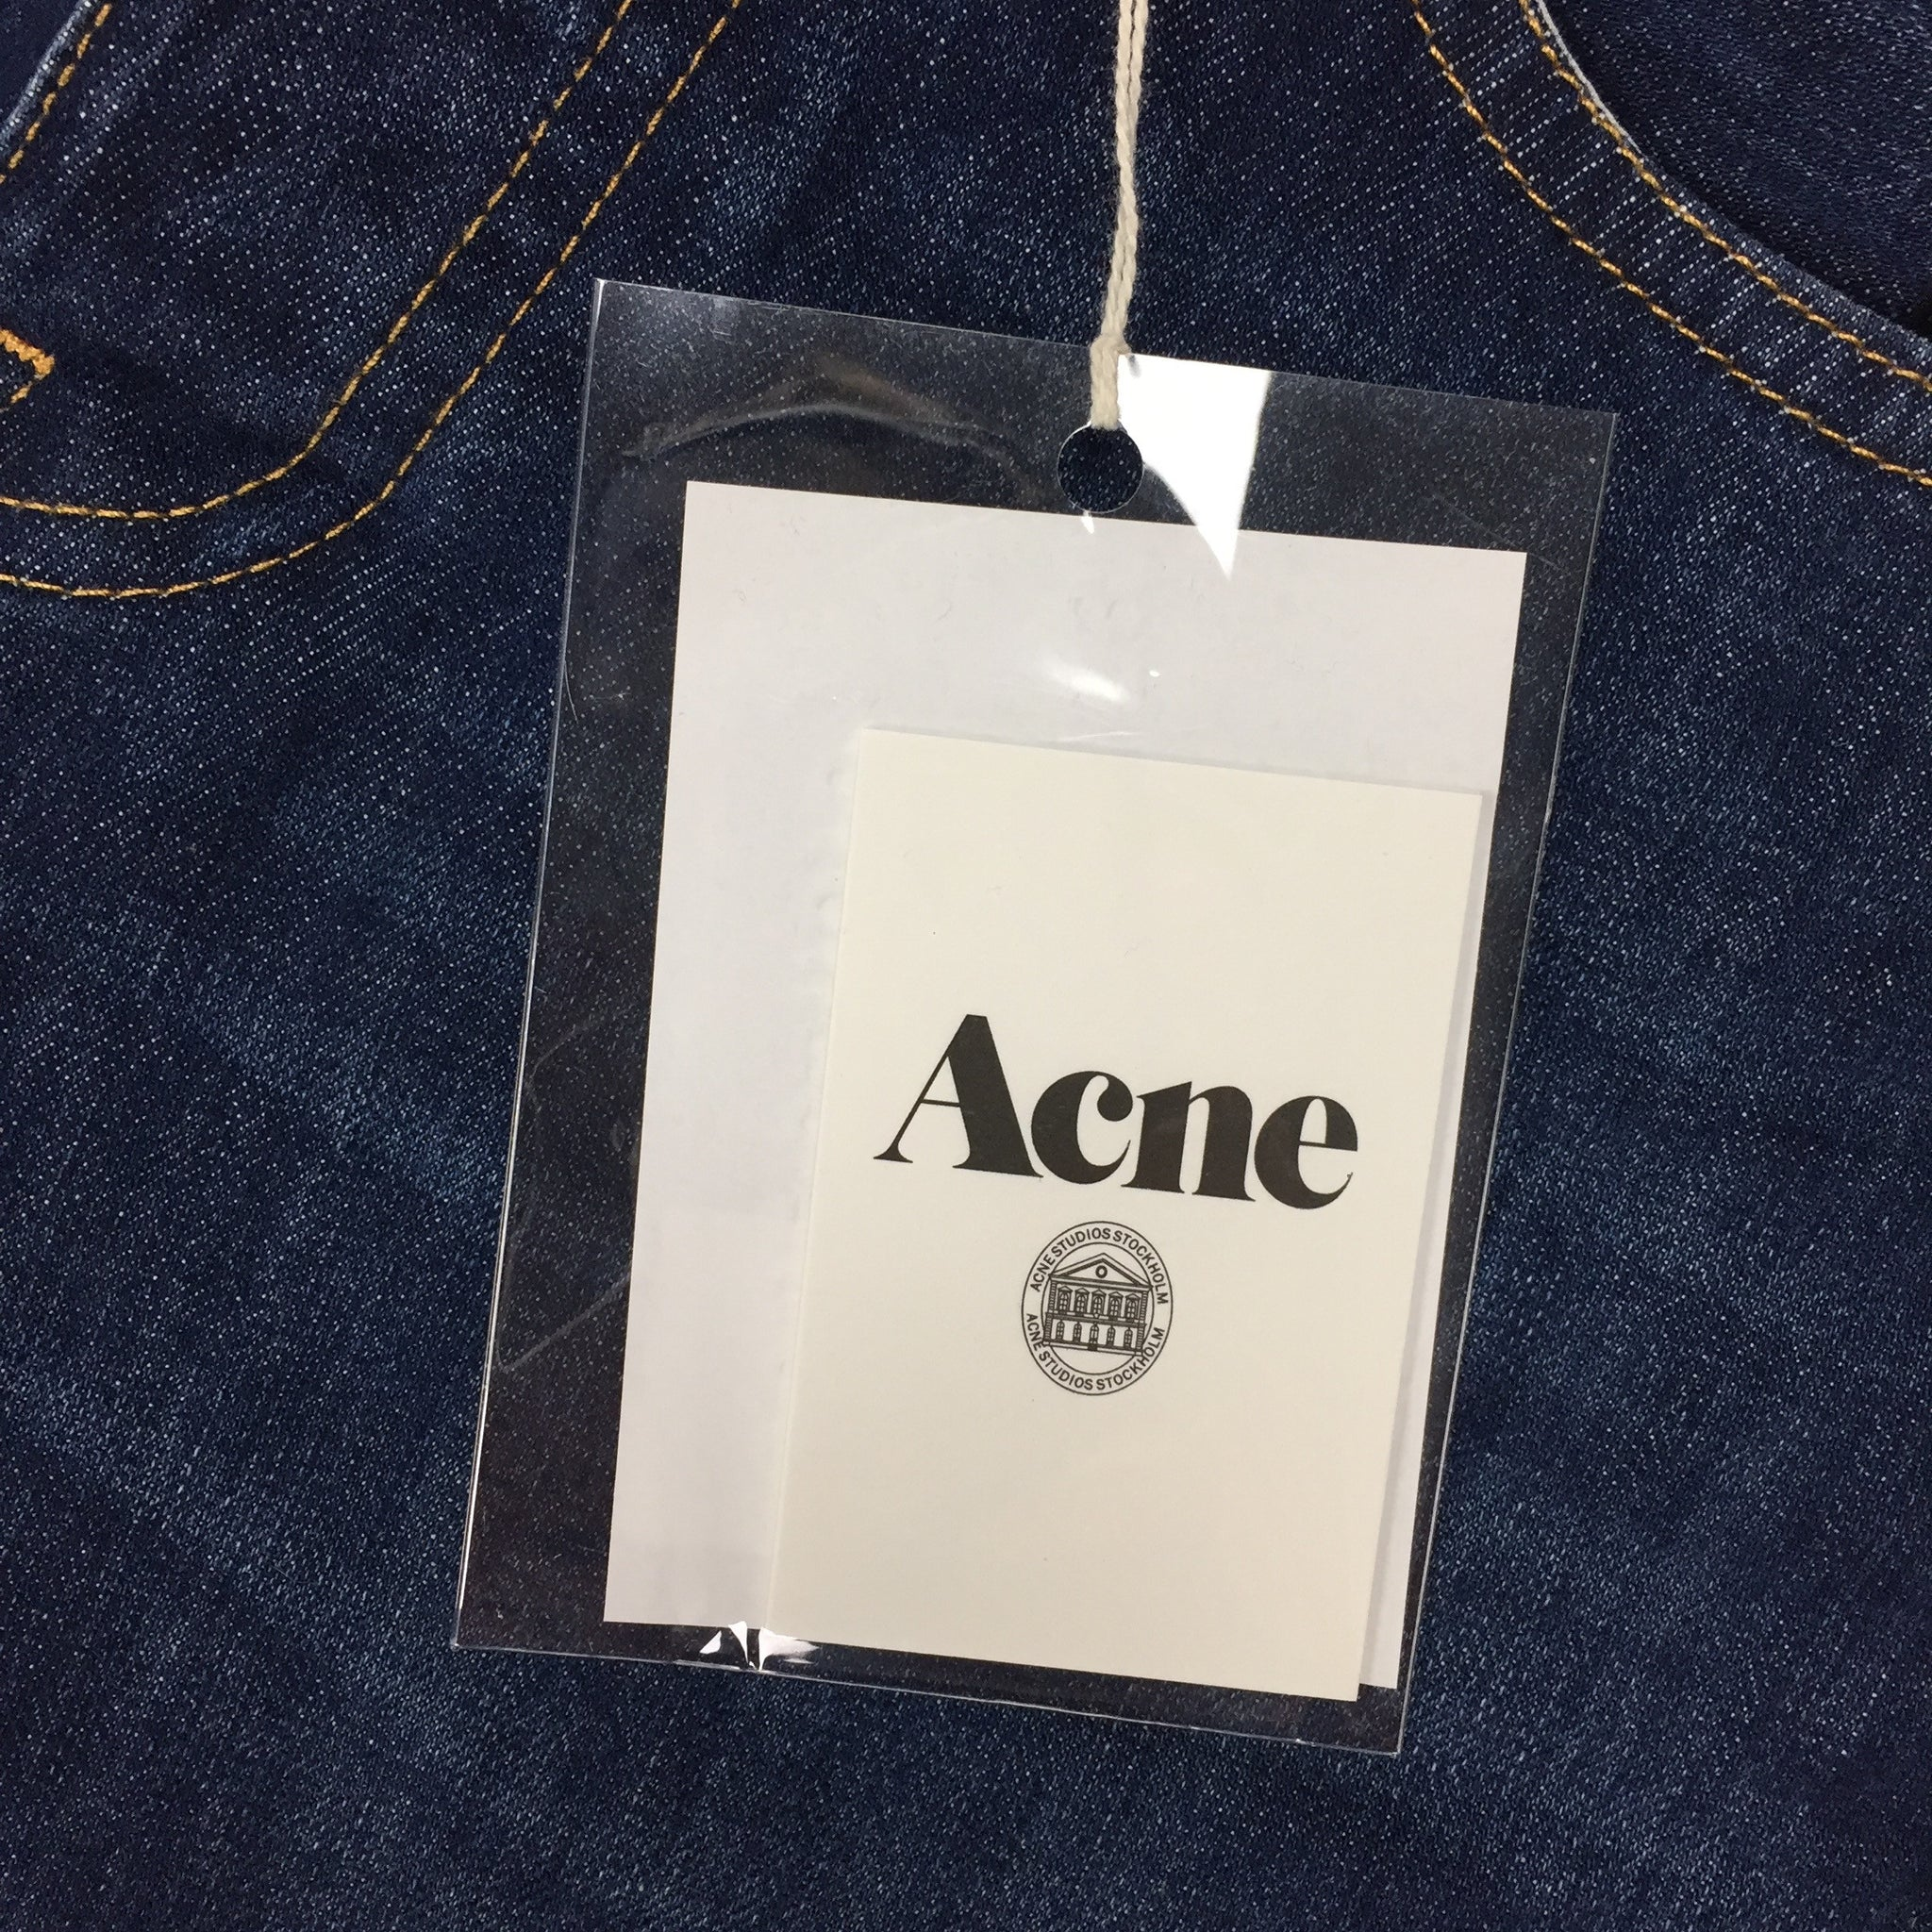 Acne - Dark Blue 'Roc' Denim Jeans